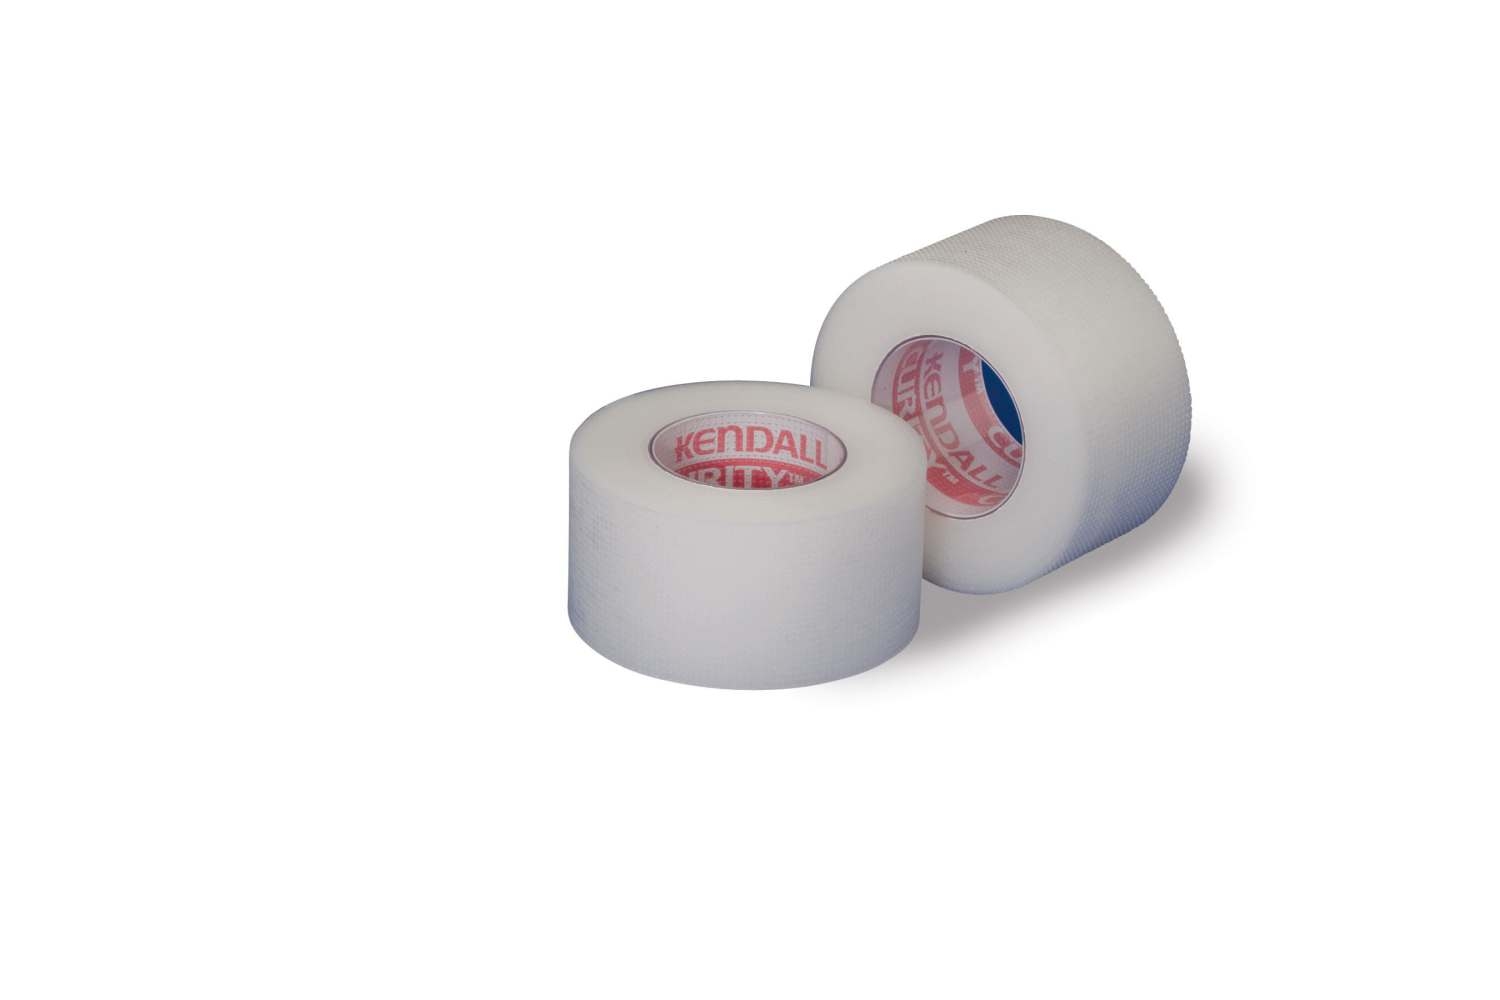 Kendall Cuirty Hypoallergenic Clear Tape - Clr 3